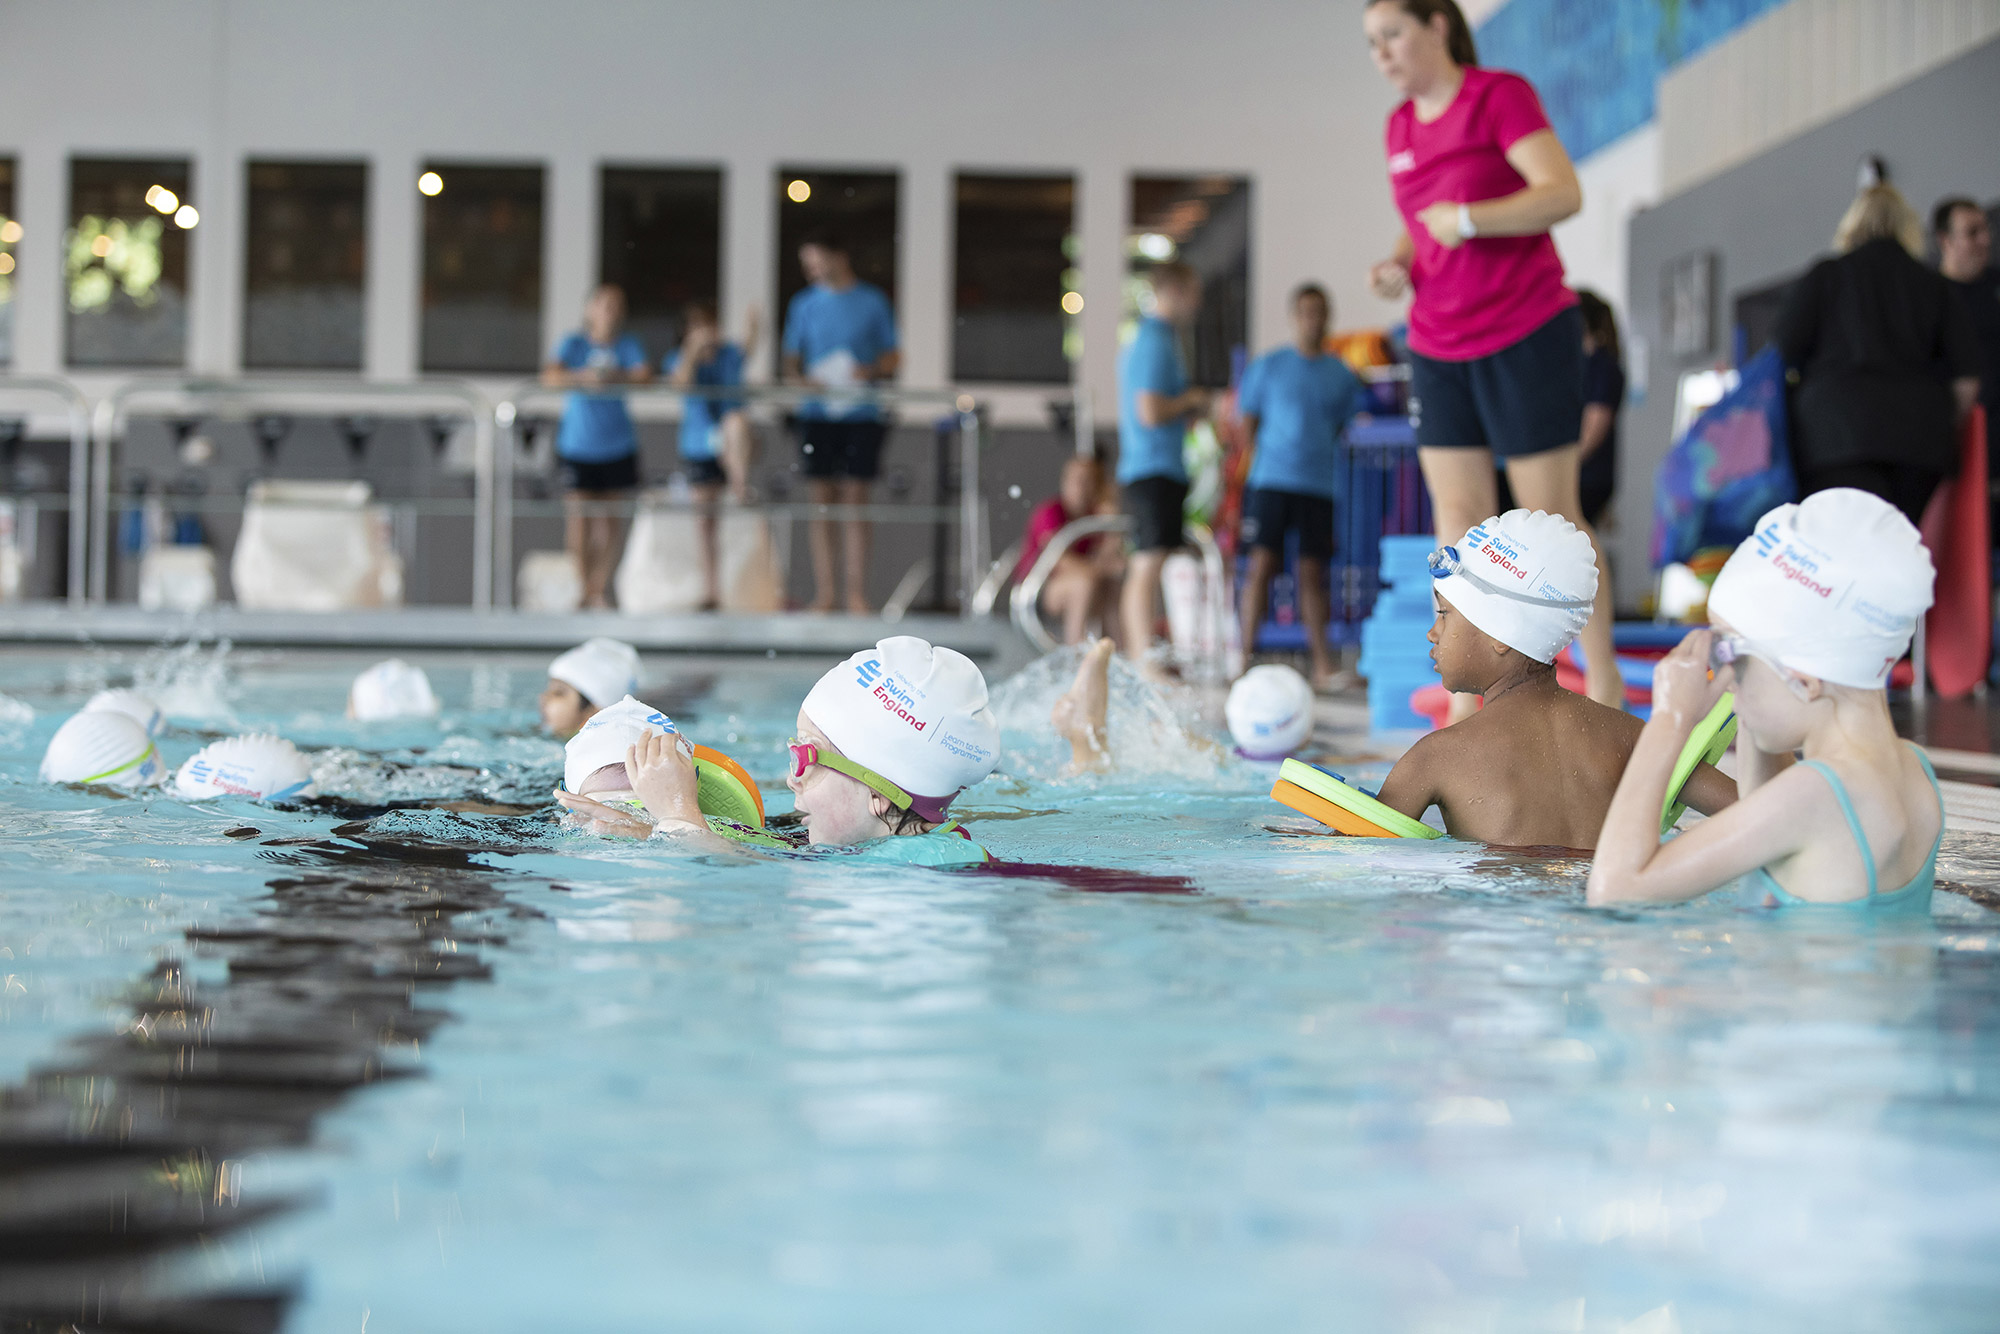 Institute of Swimming partner with Stevenage Leisure to train more swimming teachers